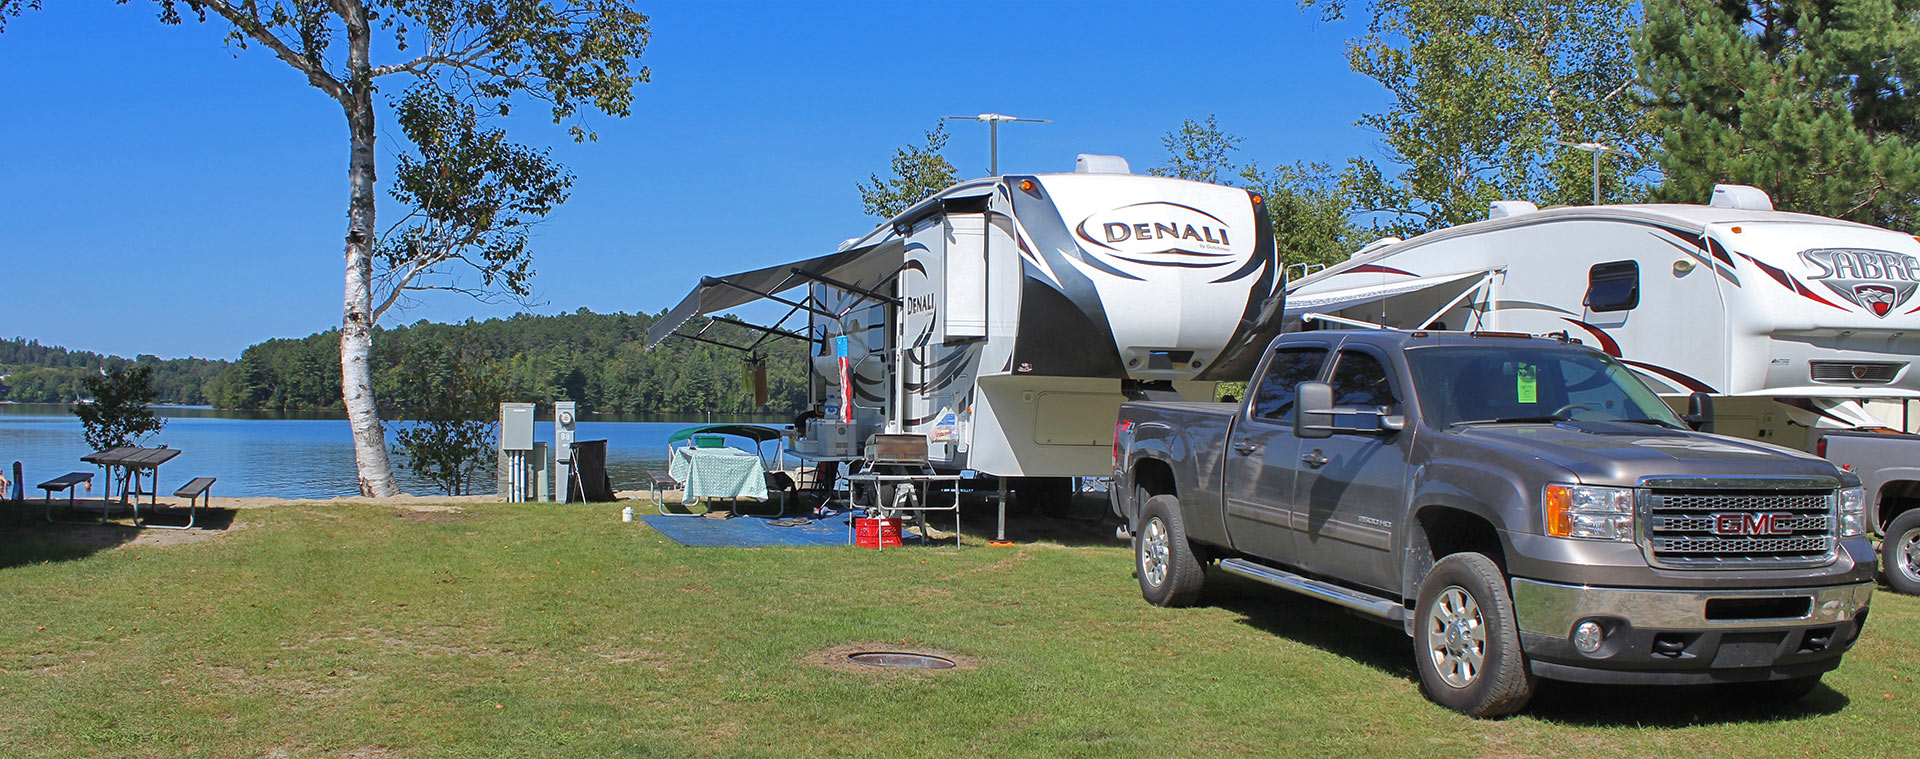 Lakeside Camping RV Site